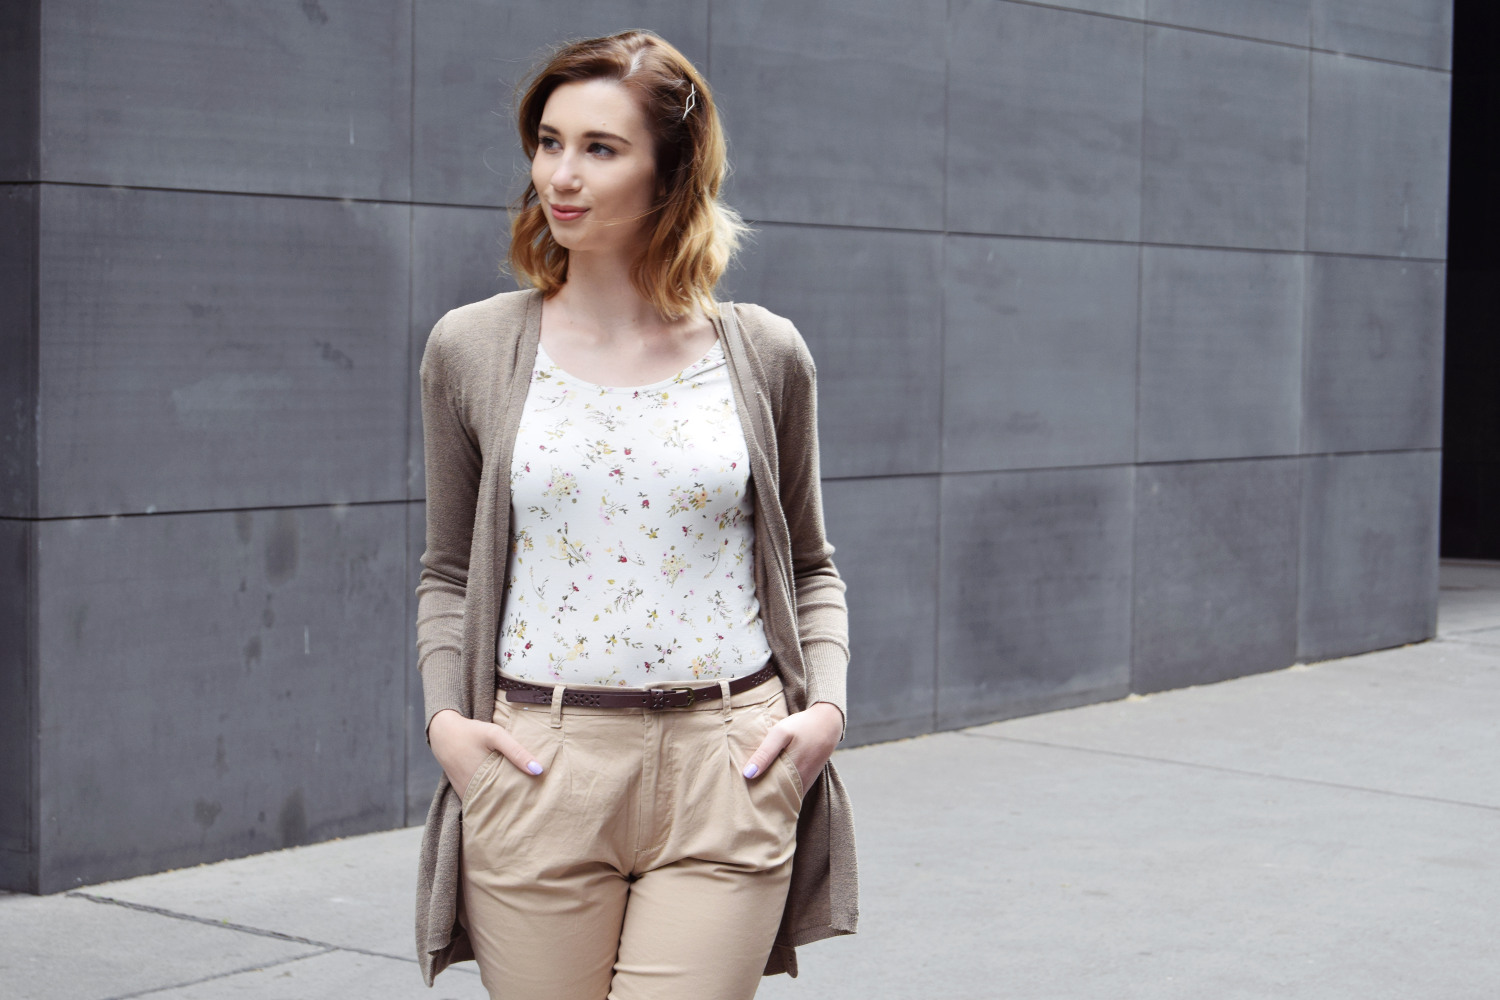 Vienna_outfit_Zalabell_fashion_elegant_A5